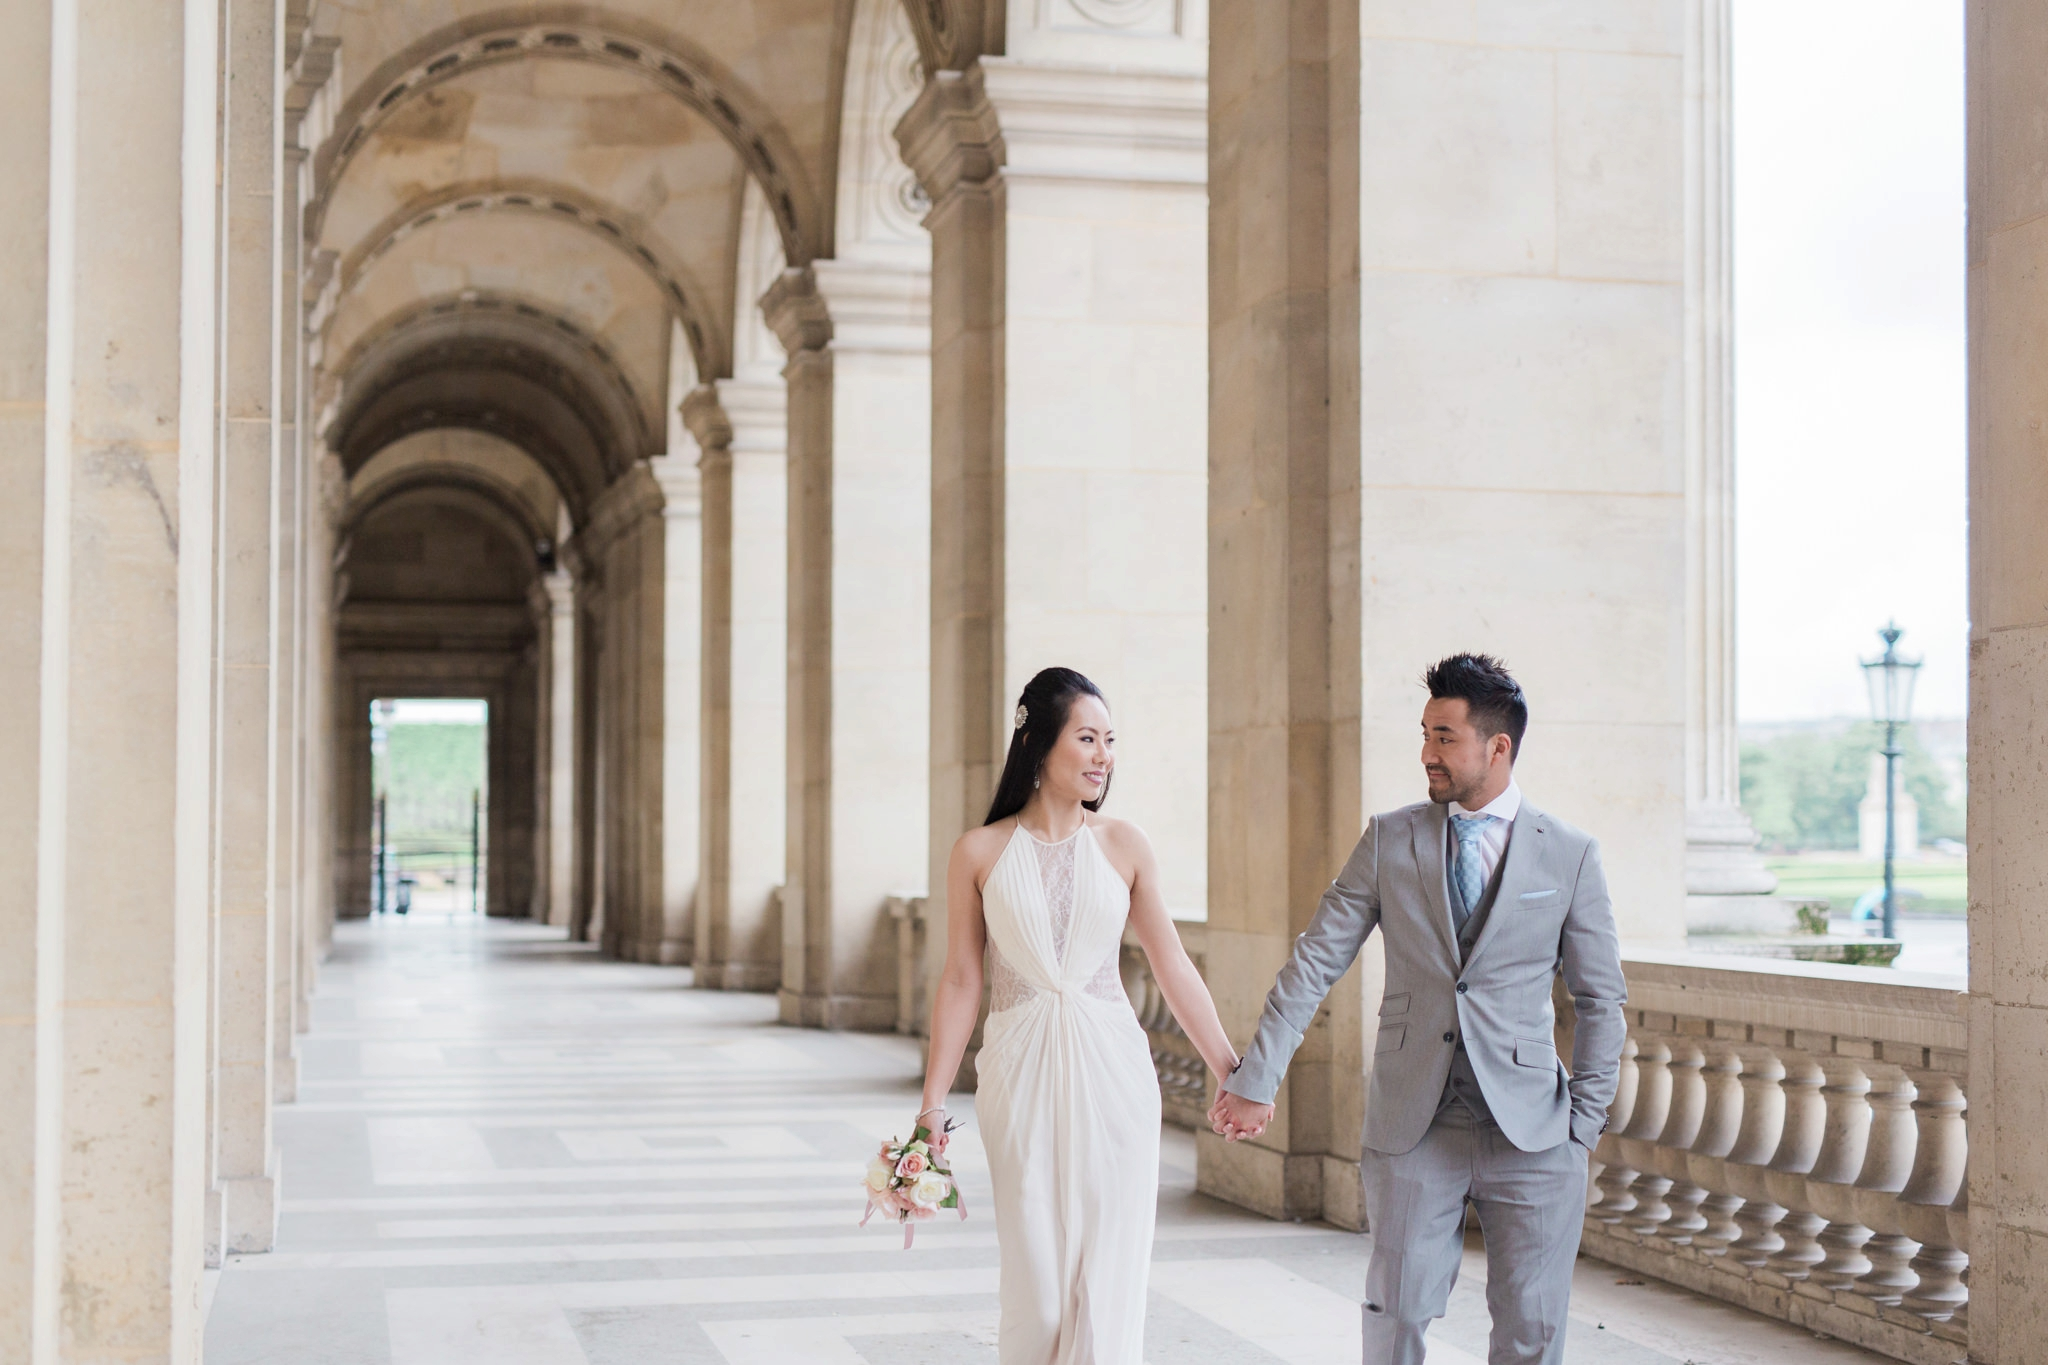 Suzanne_li_photography_paris_engagement_shoot_0014.jpg